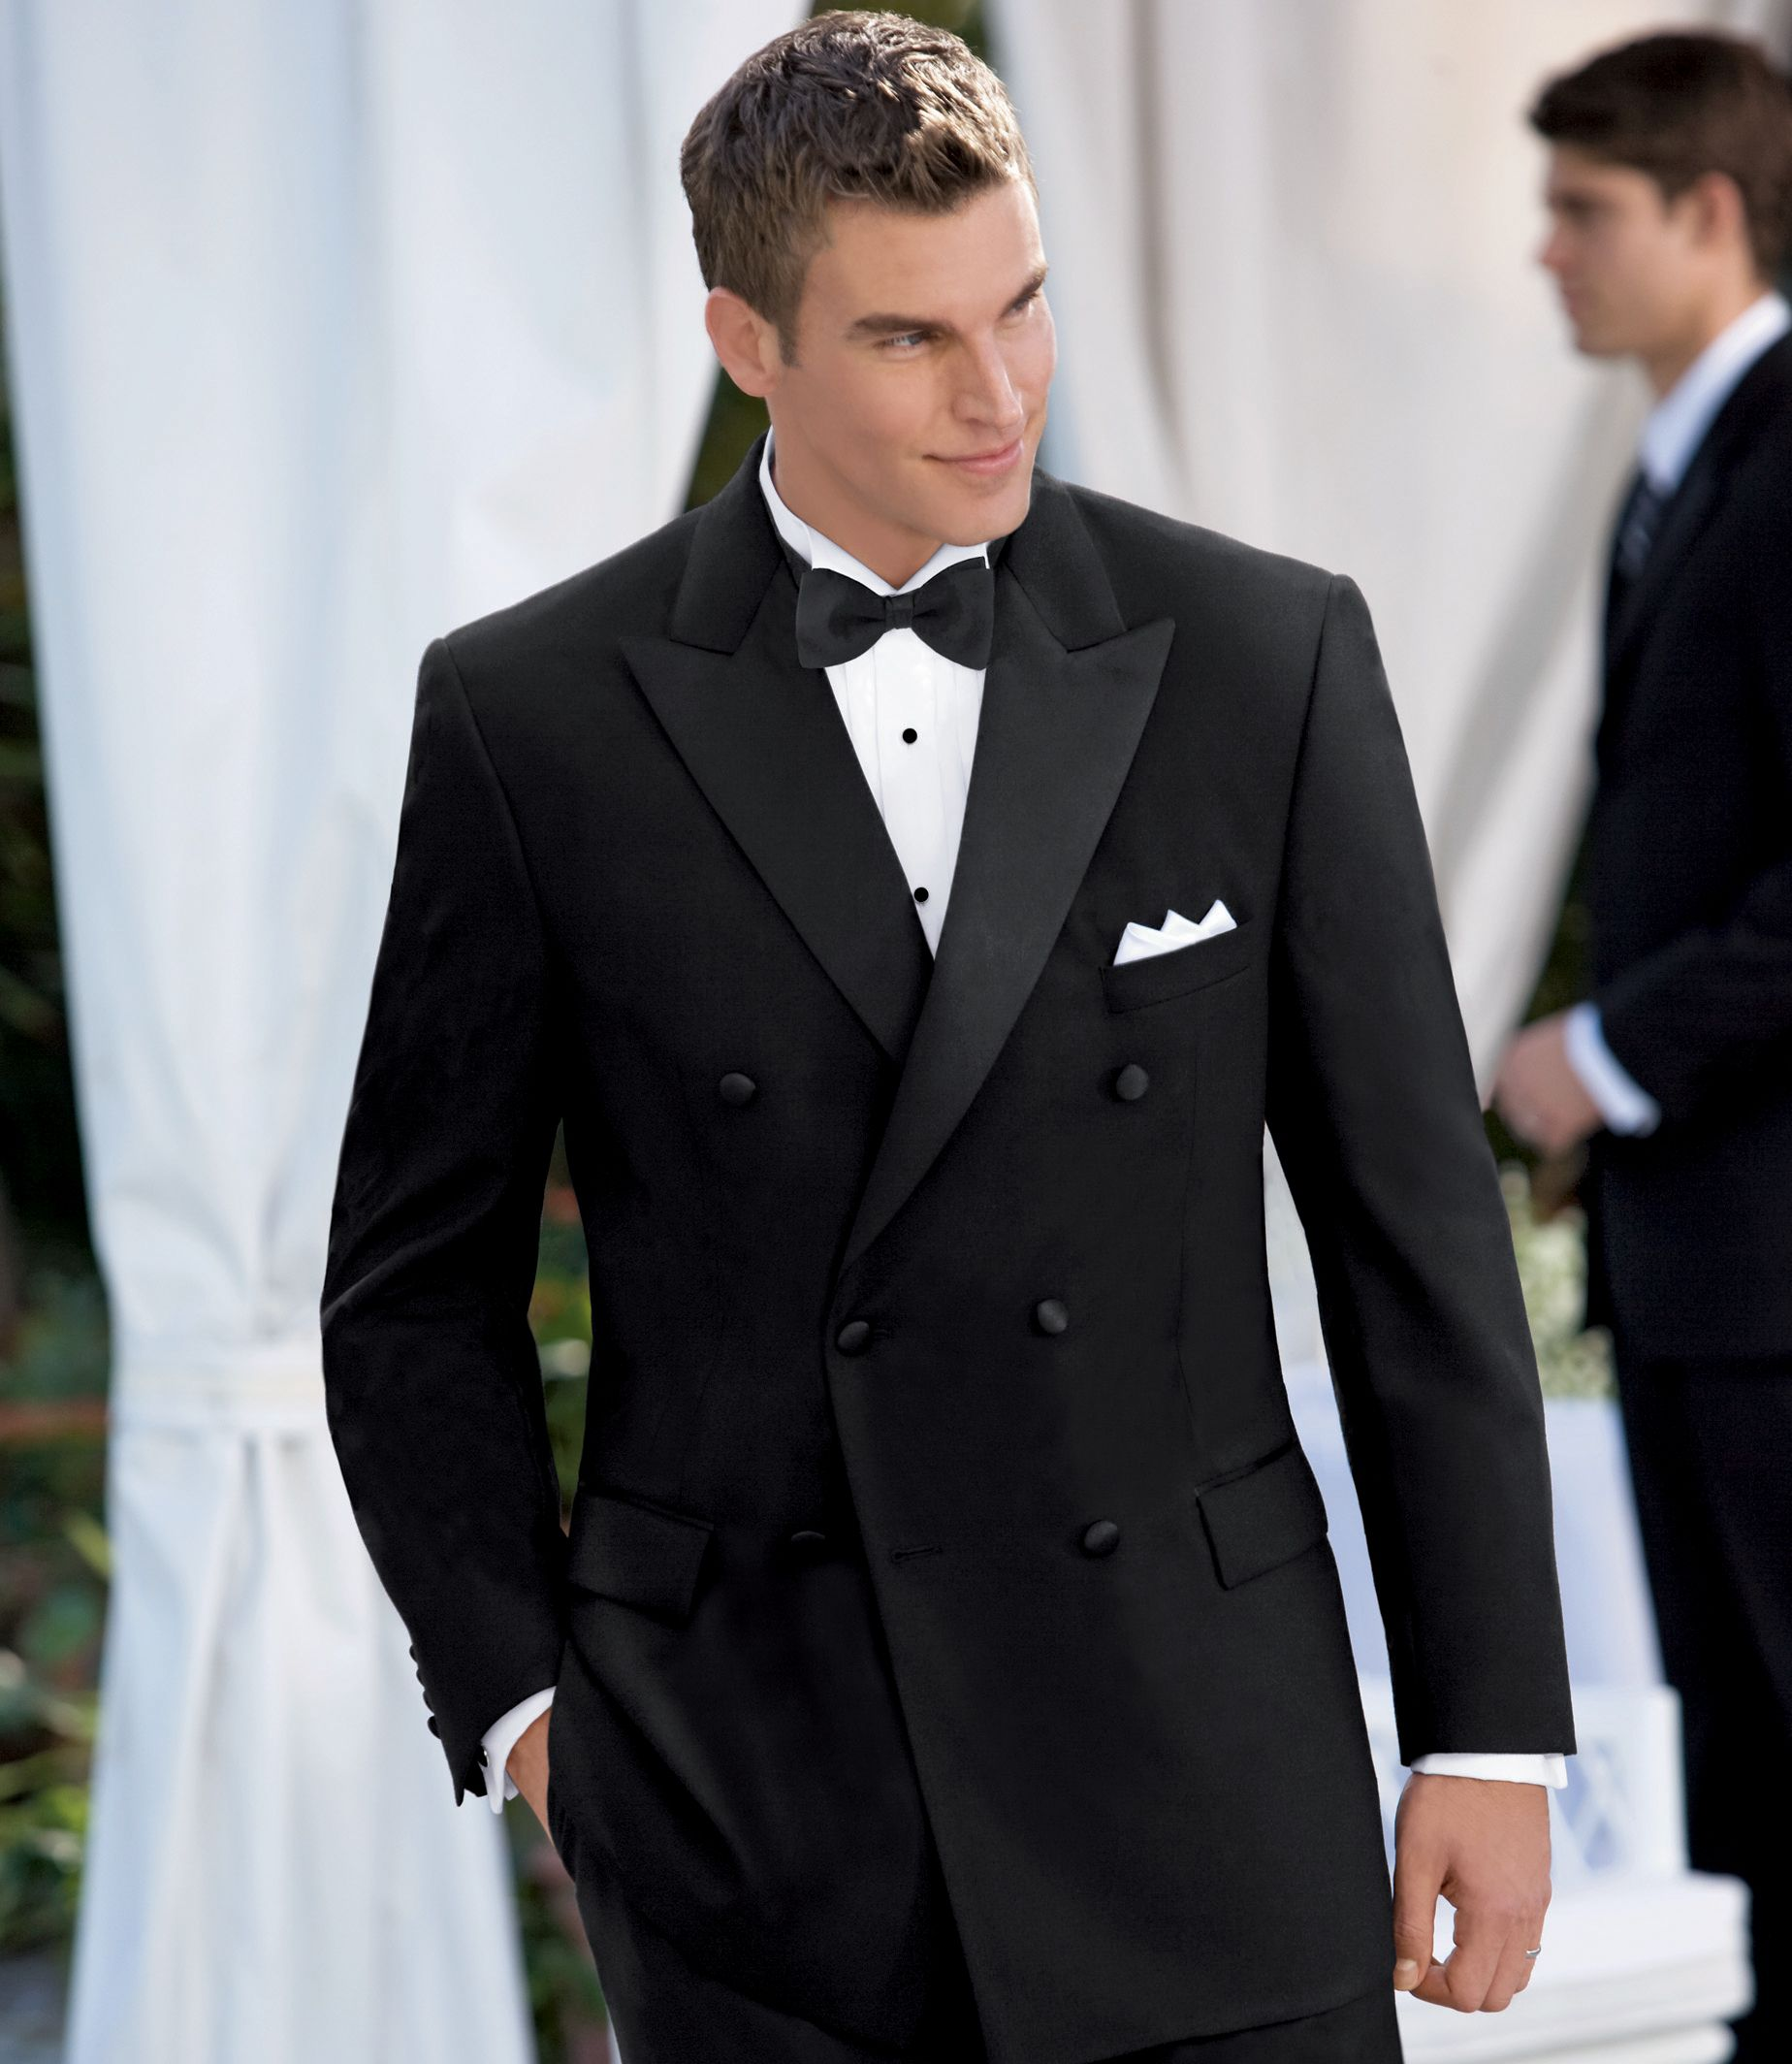 Men's Suit Black Double-Breasted Tuxedo Jacket JoS. A. Bank - BLACK - 44 - LONG